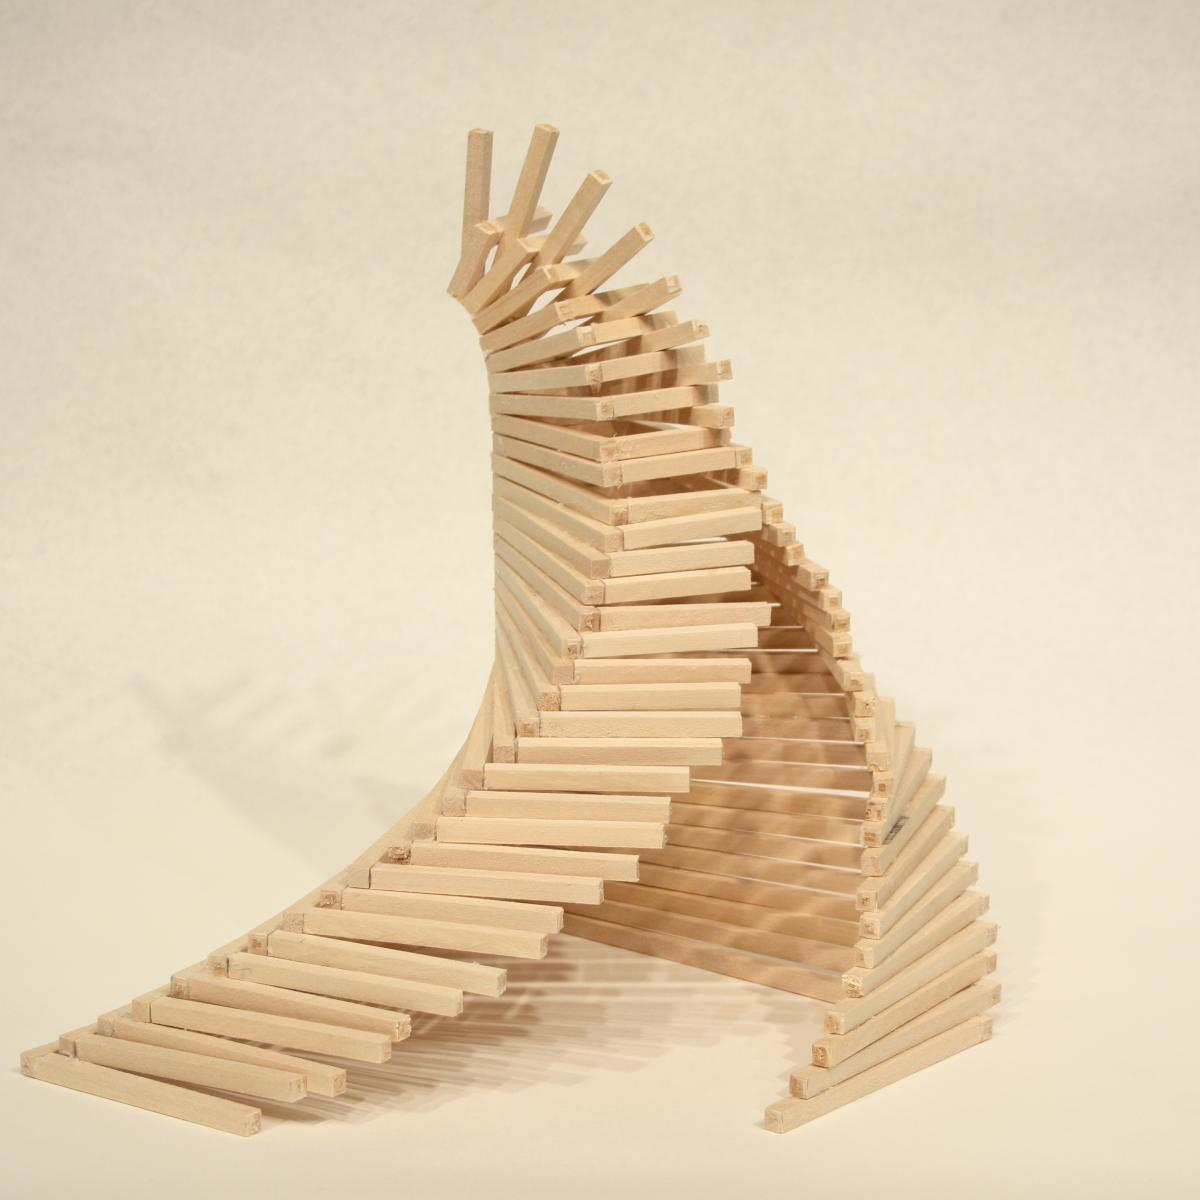 Wooden sticks piled together to form a curving tower with a split opening.